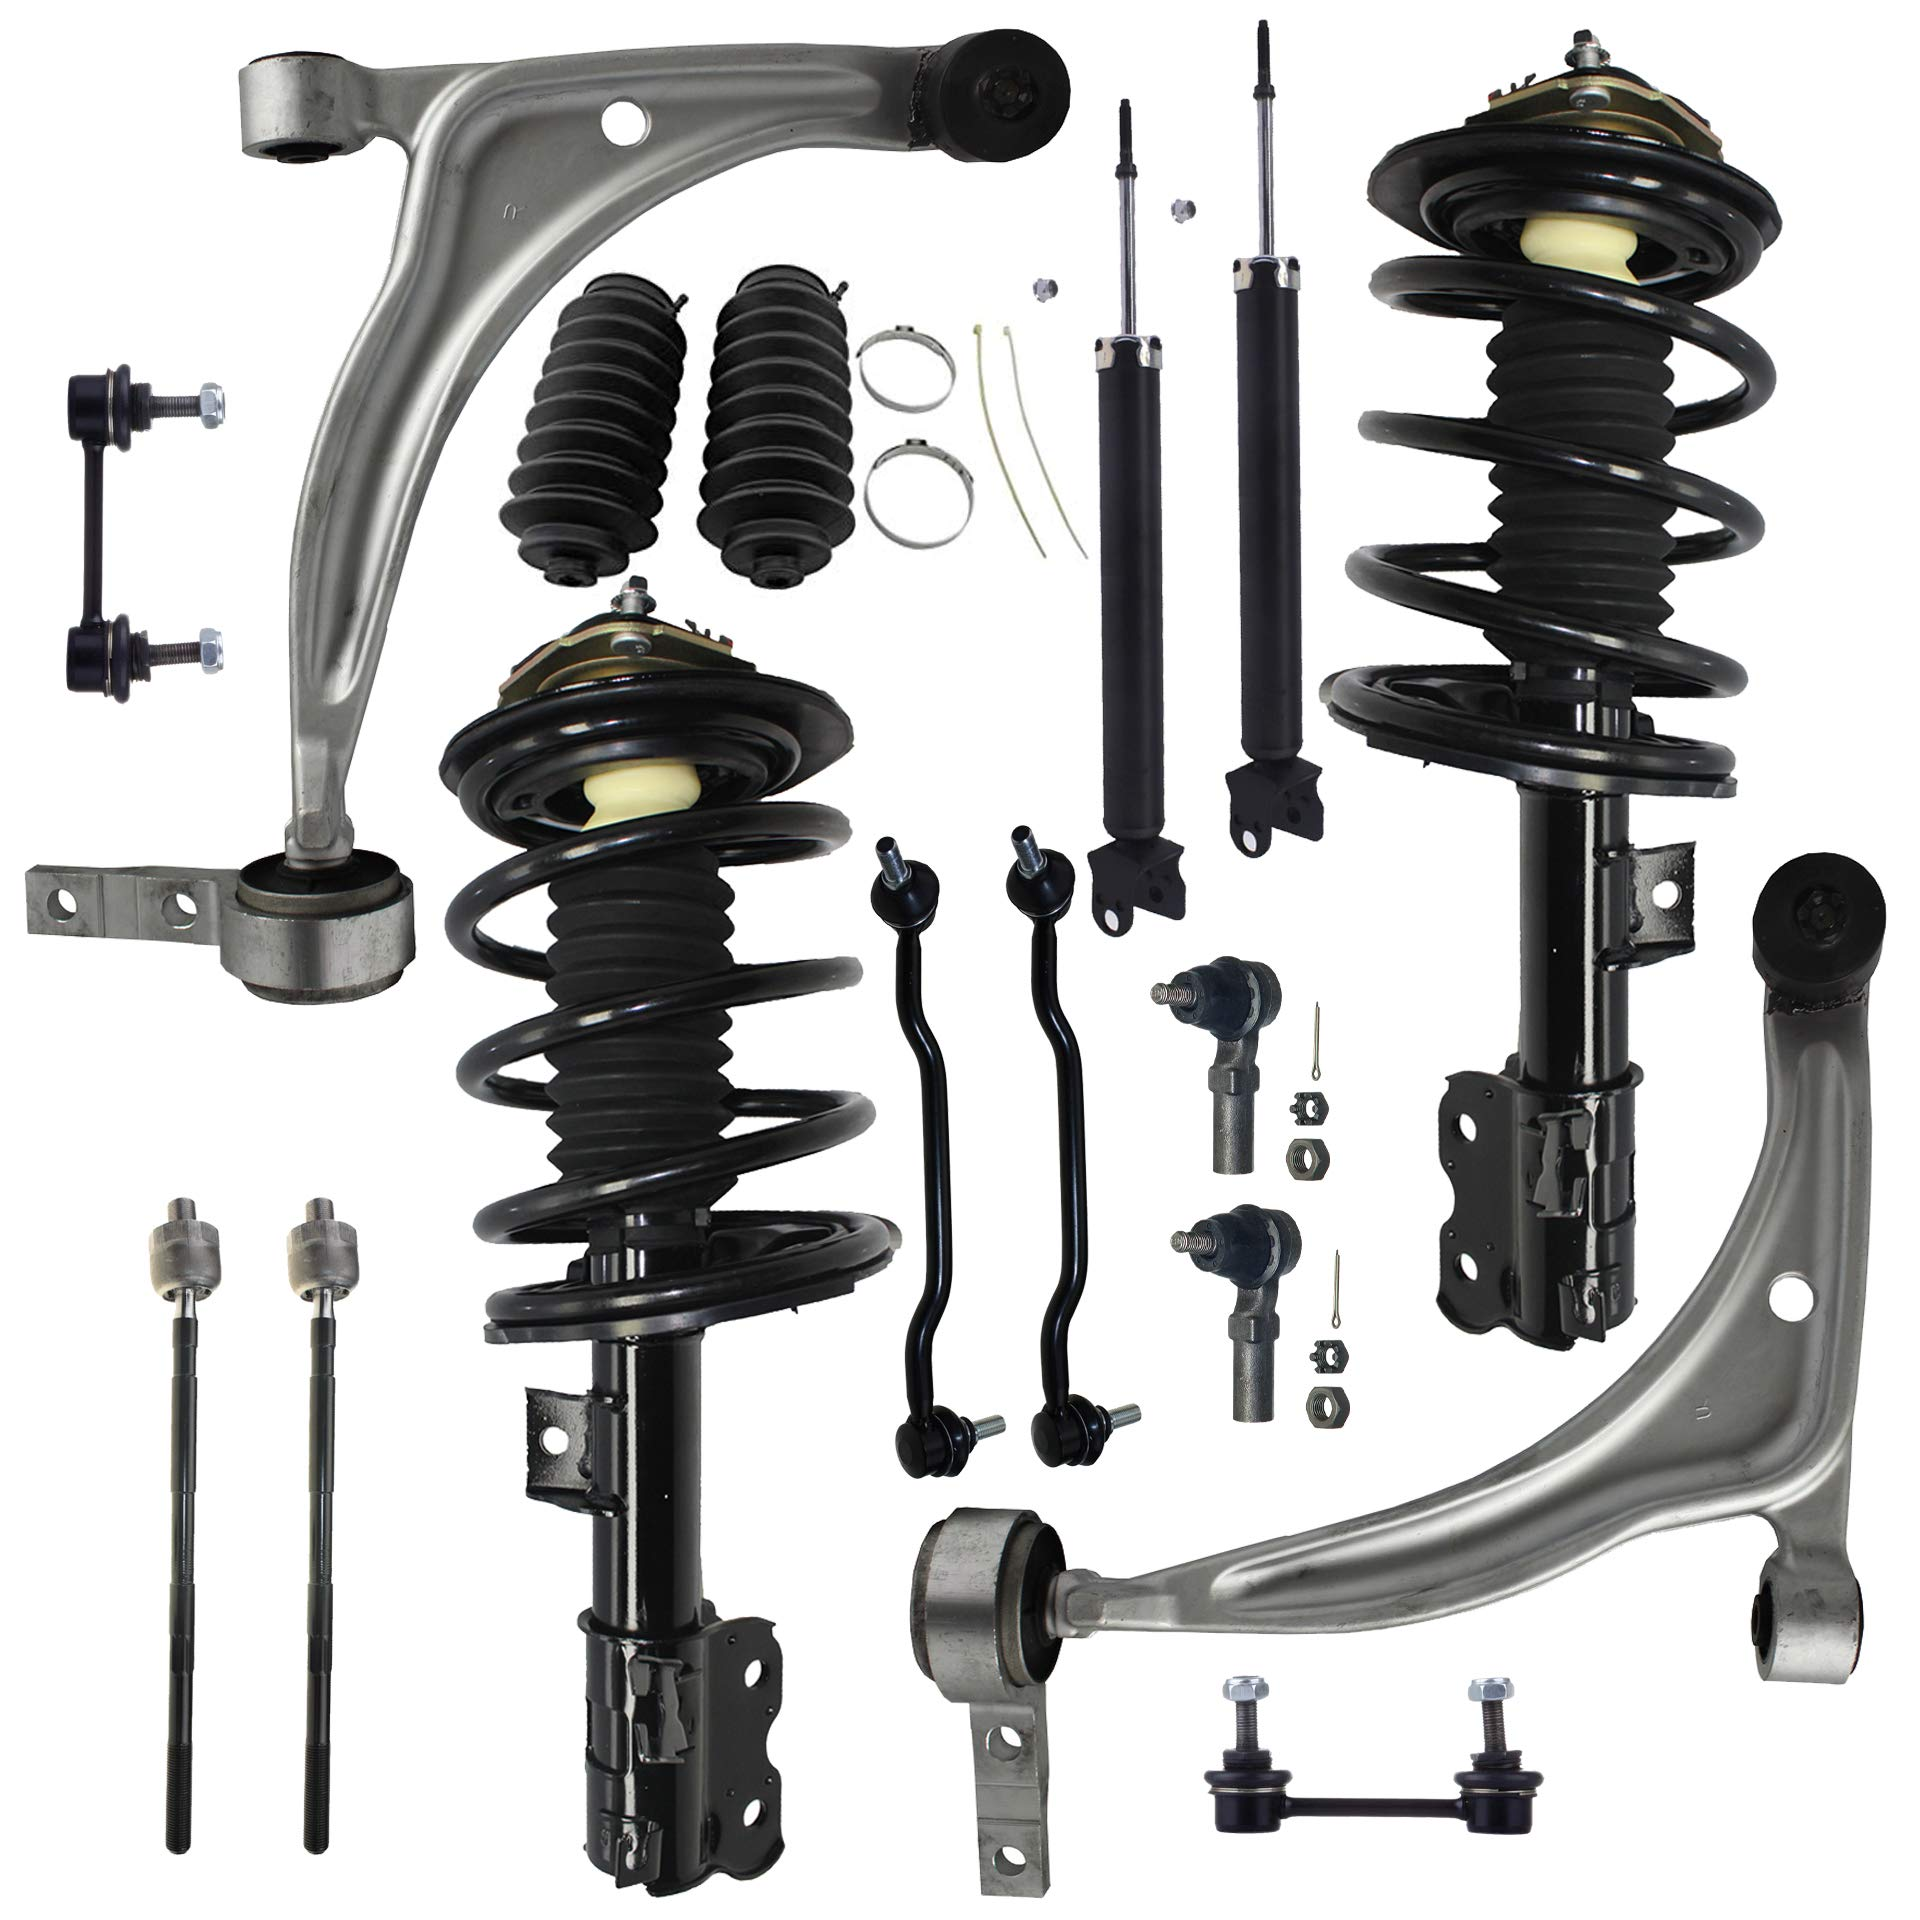 For 2005-2009 Hyundai Tucson Kia Sportage 16pc Front Rear Strut Suspension Kit